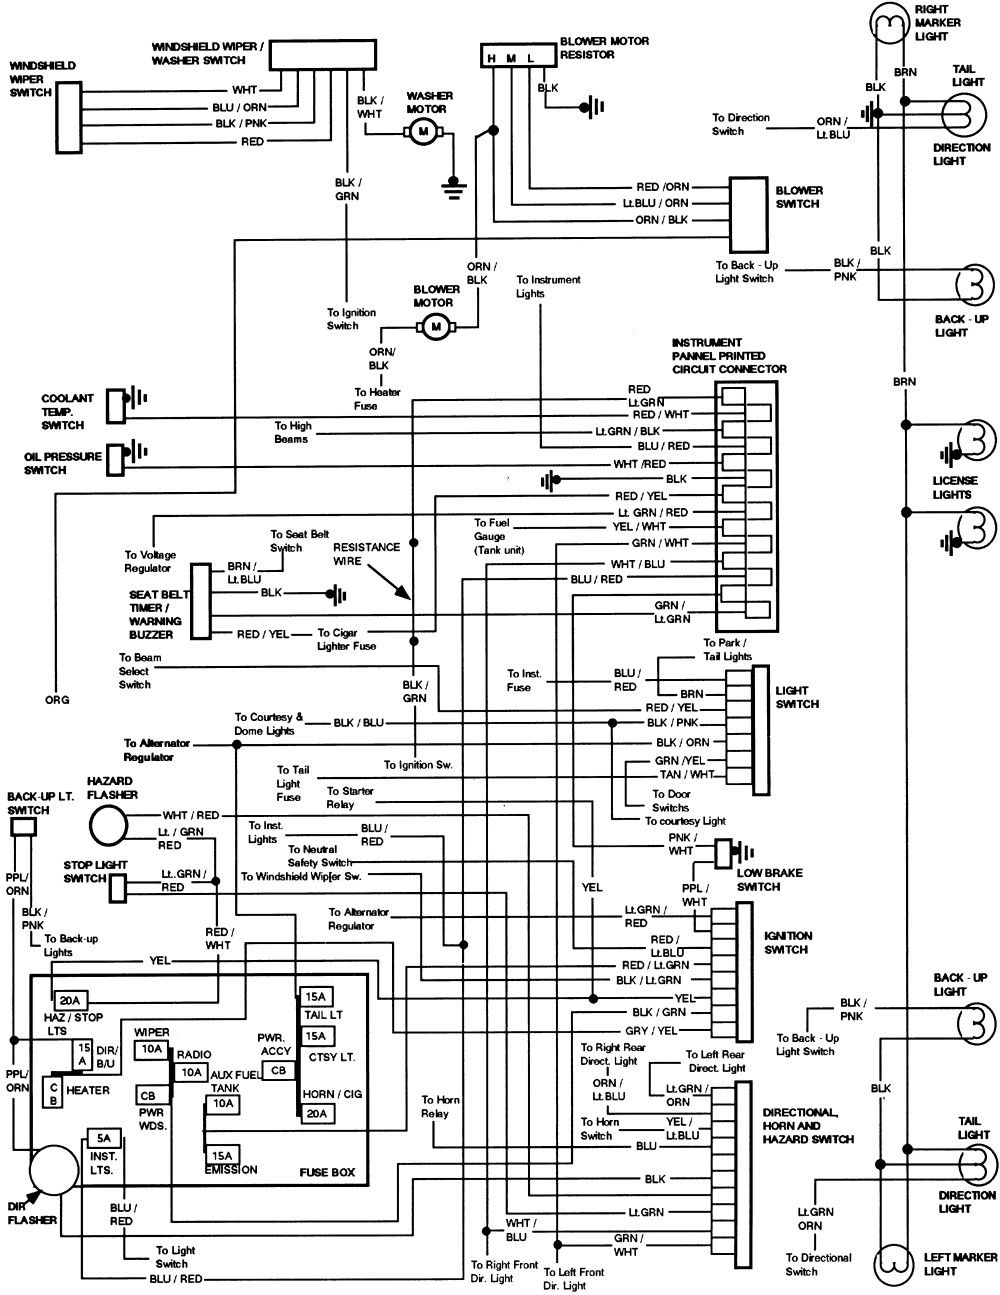 Stock Photo Ford Alternator Wiring Diagram 1988 Subaru Alternator Wiring Wiring Diagram